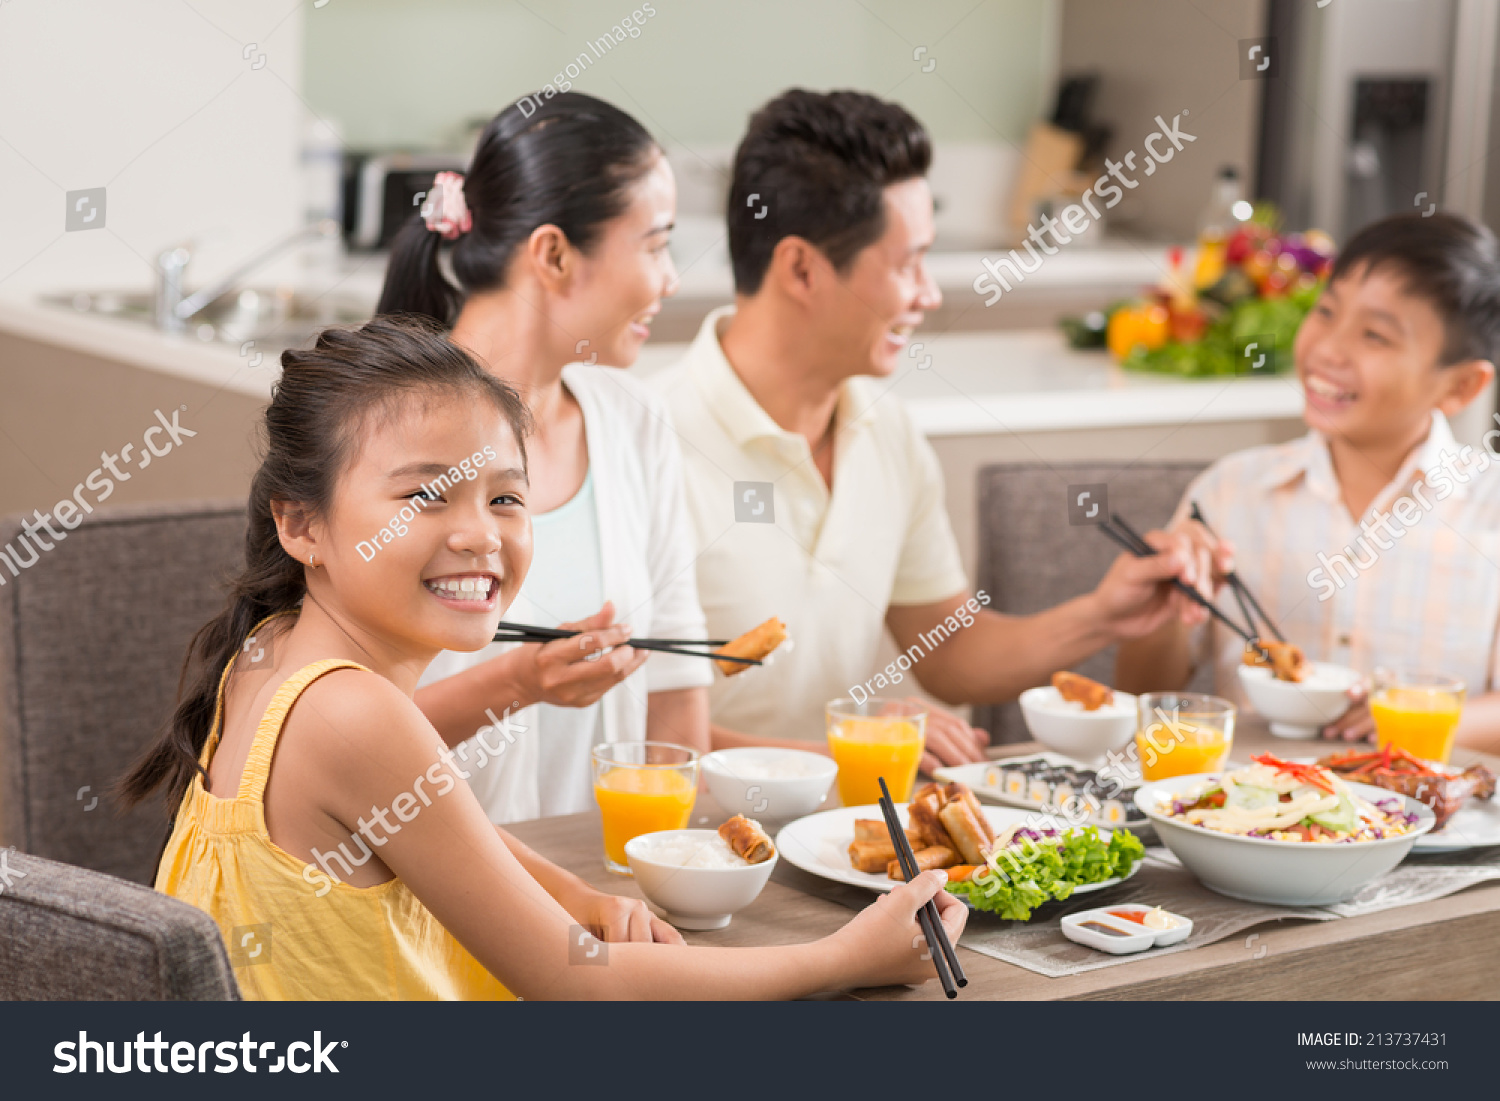 Family dinner table with food - Vietnamese Girl Enjoying National Food At The Family Dinner Table